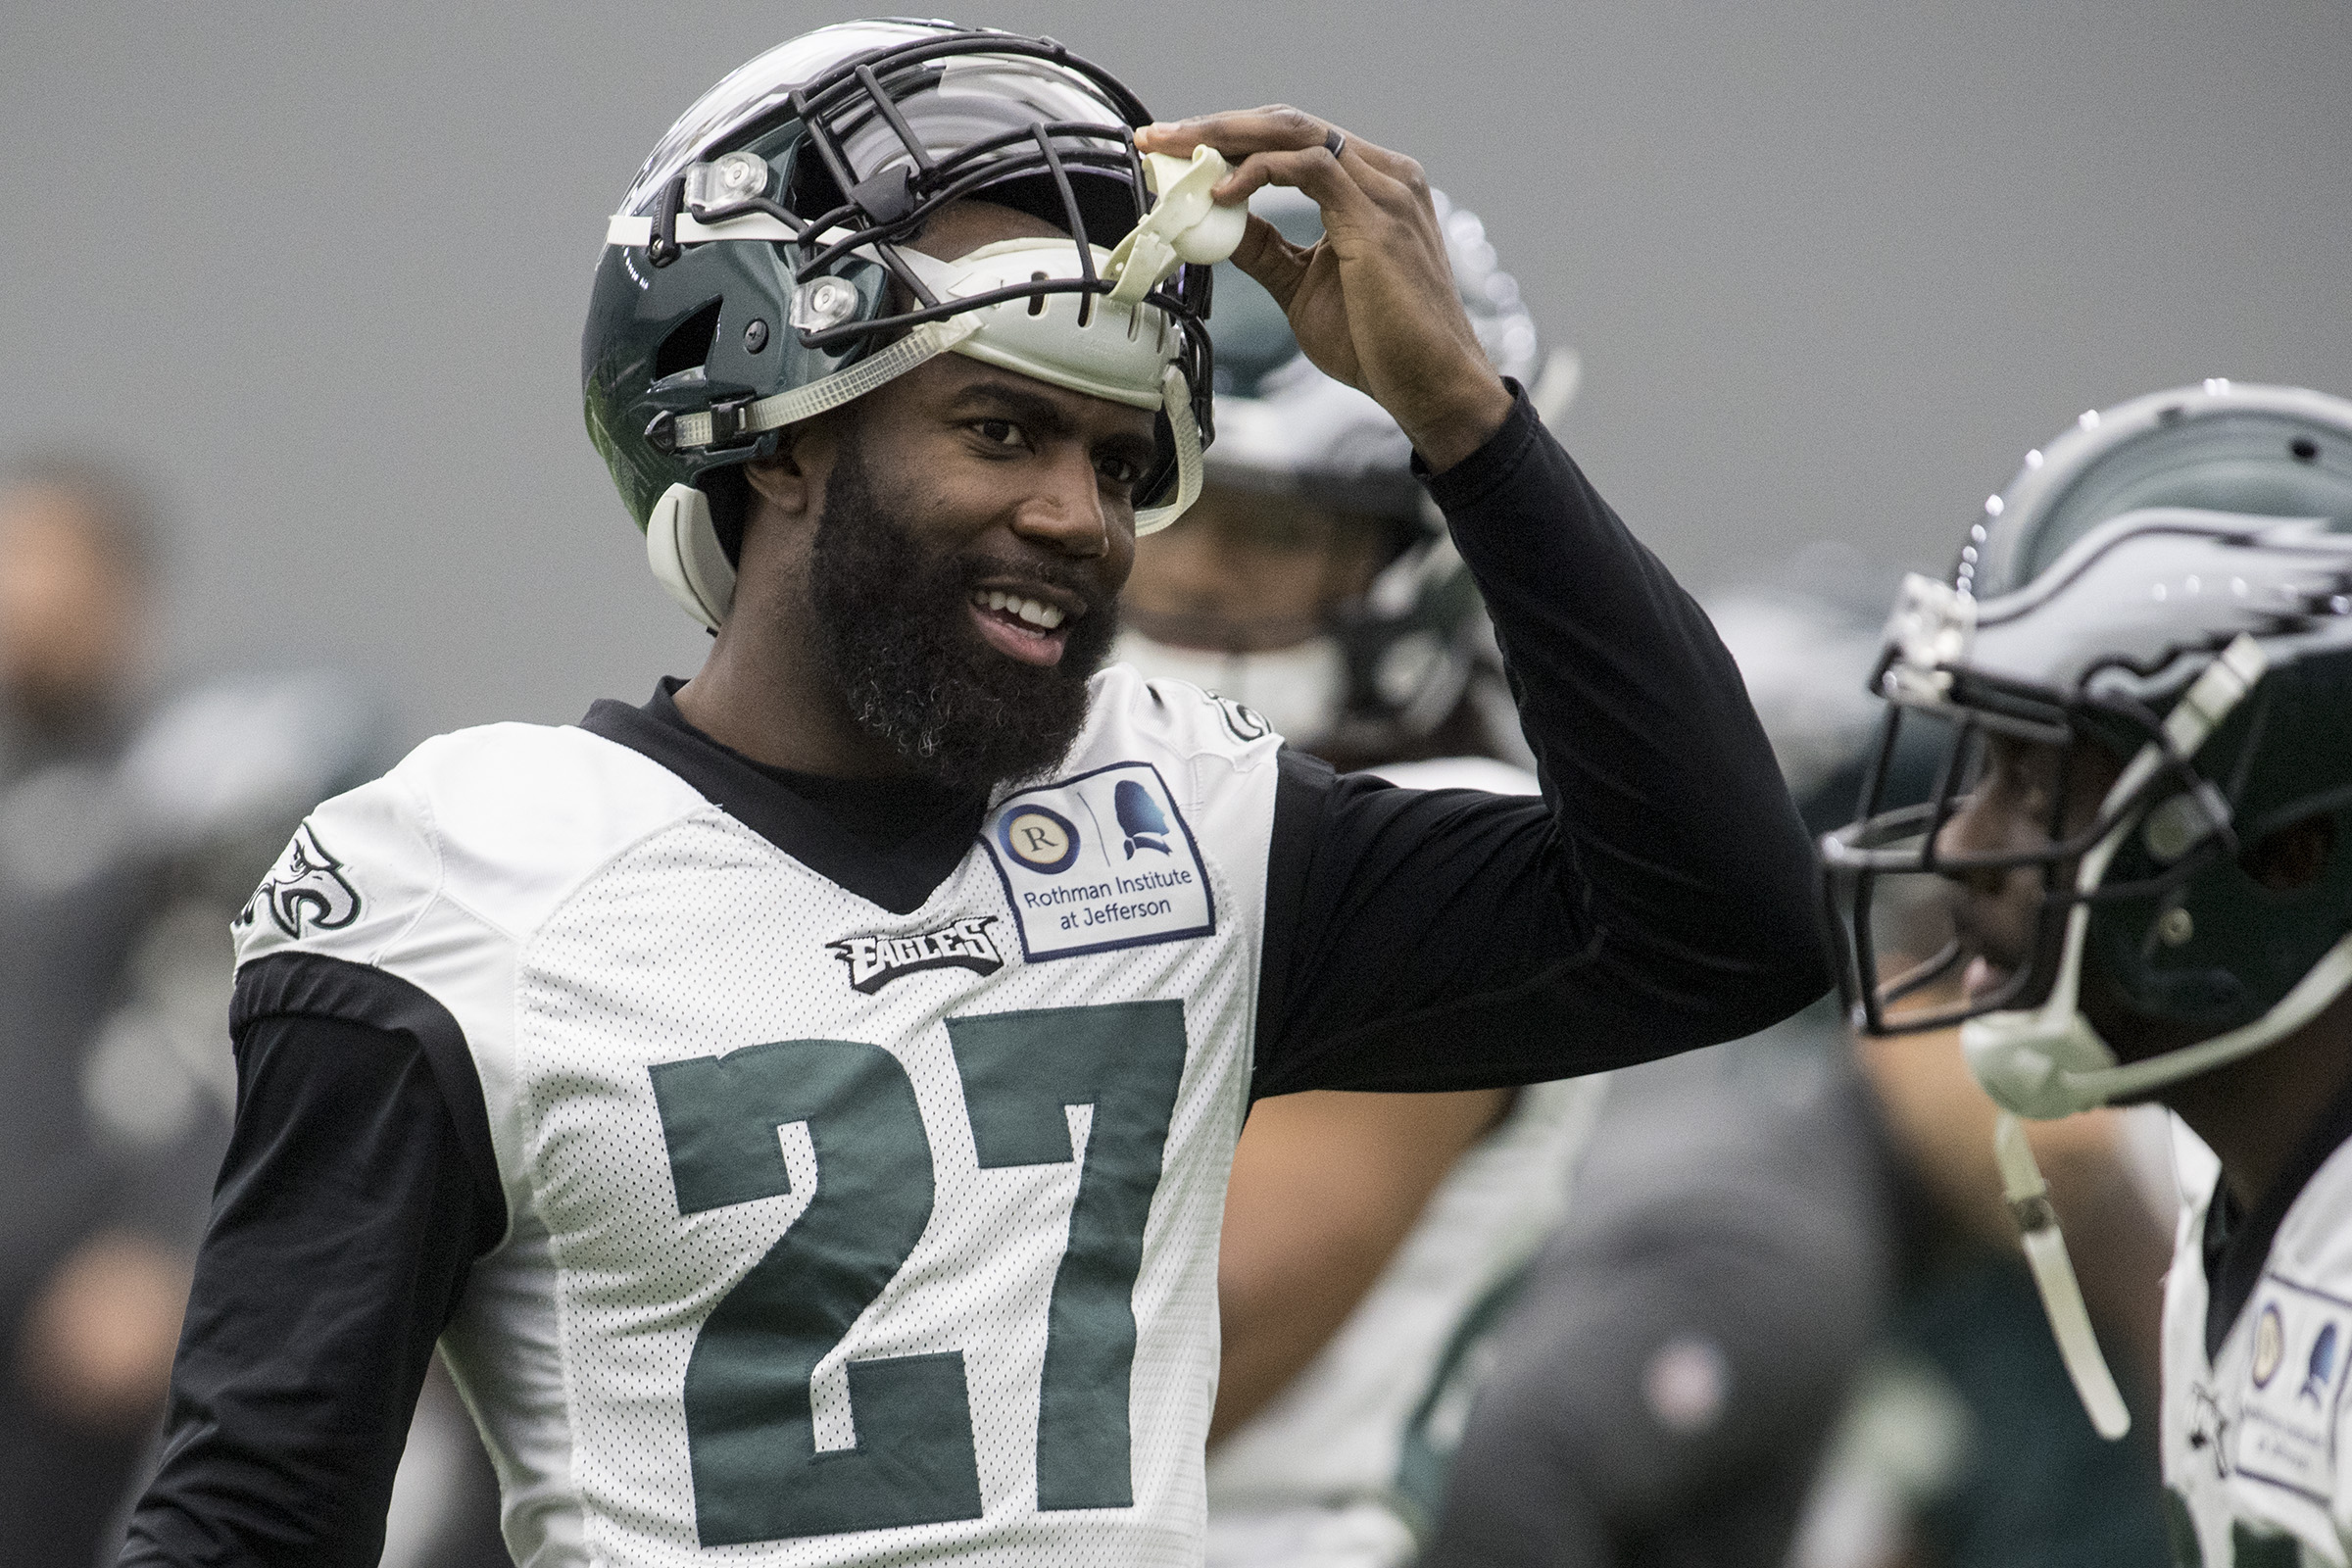 Eagles safety Malcolm Jenkins won a Super Bowl with the Saints.